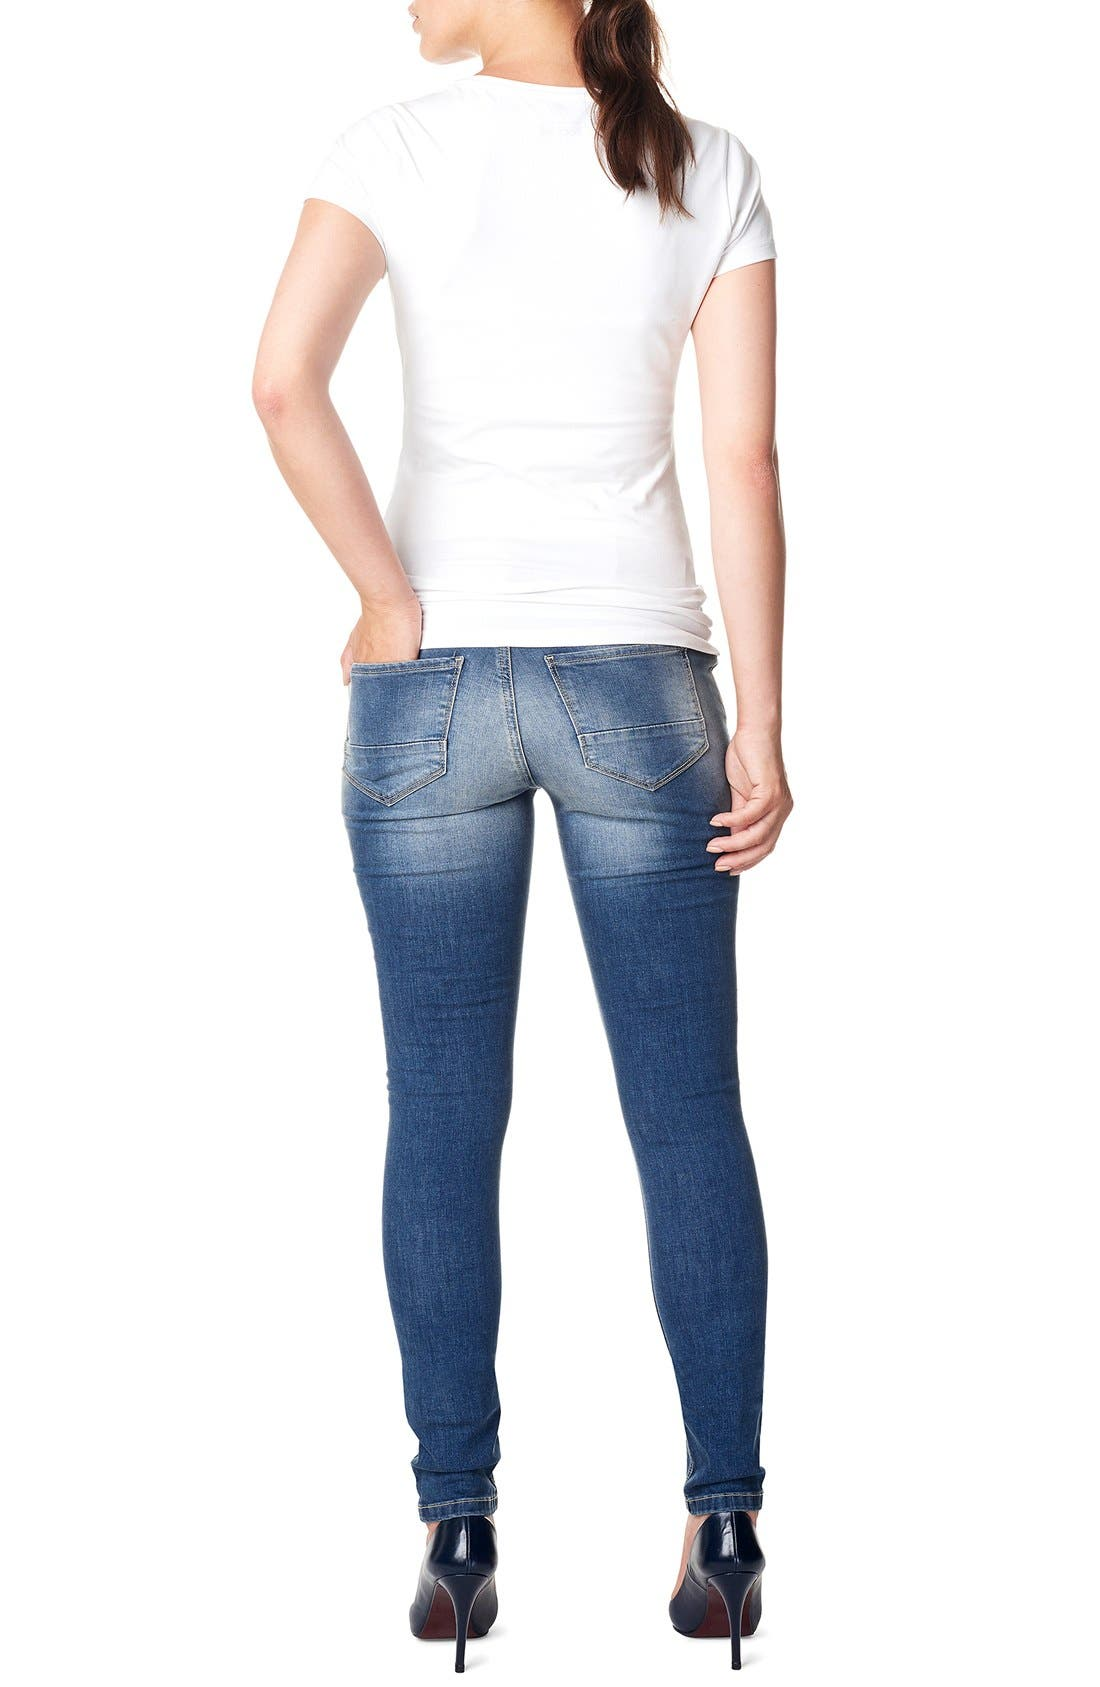 NOPPIES,                             'Tara' Over the Belly Skinny Maternity Jeans,                             Alternate thumbnail 2, color,                             STONE WASH